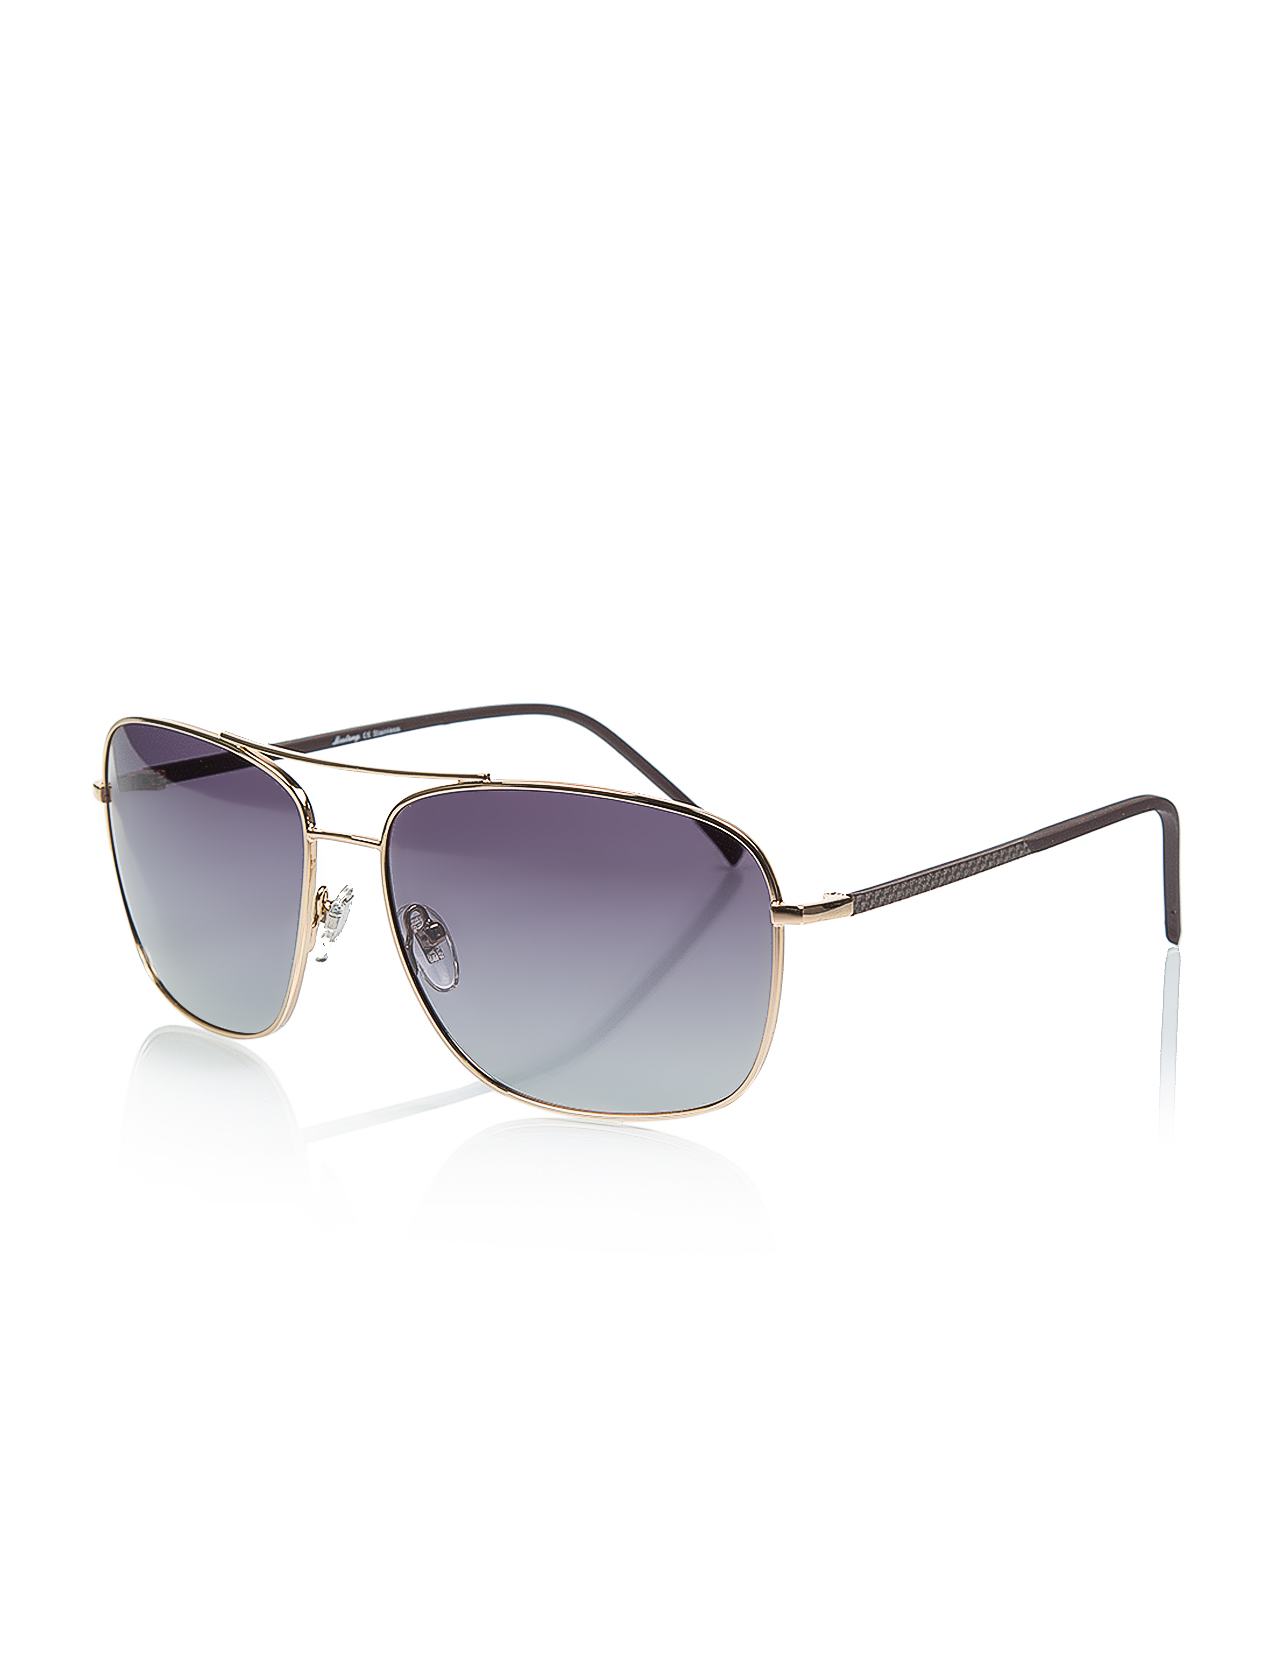 Men's sunglasses mu 1738 02 metal yellow unspecified 62 -- mustang